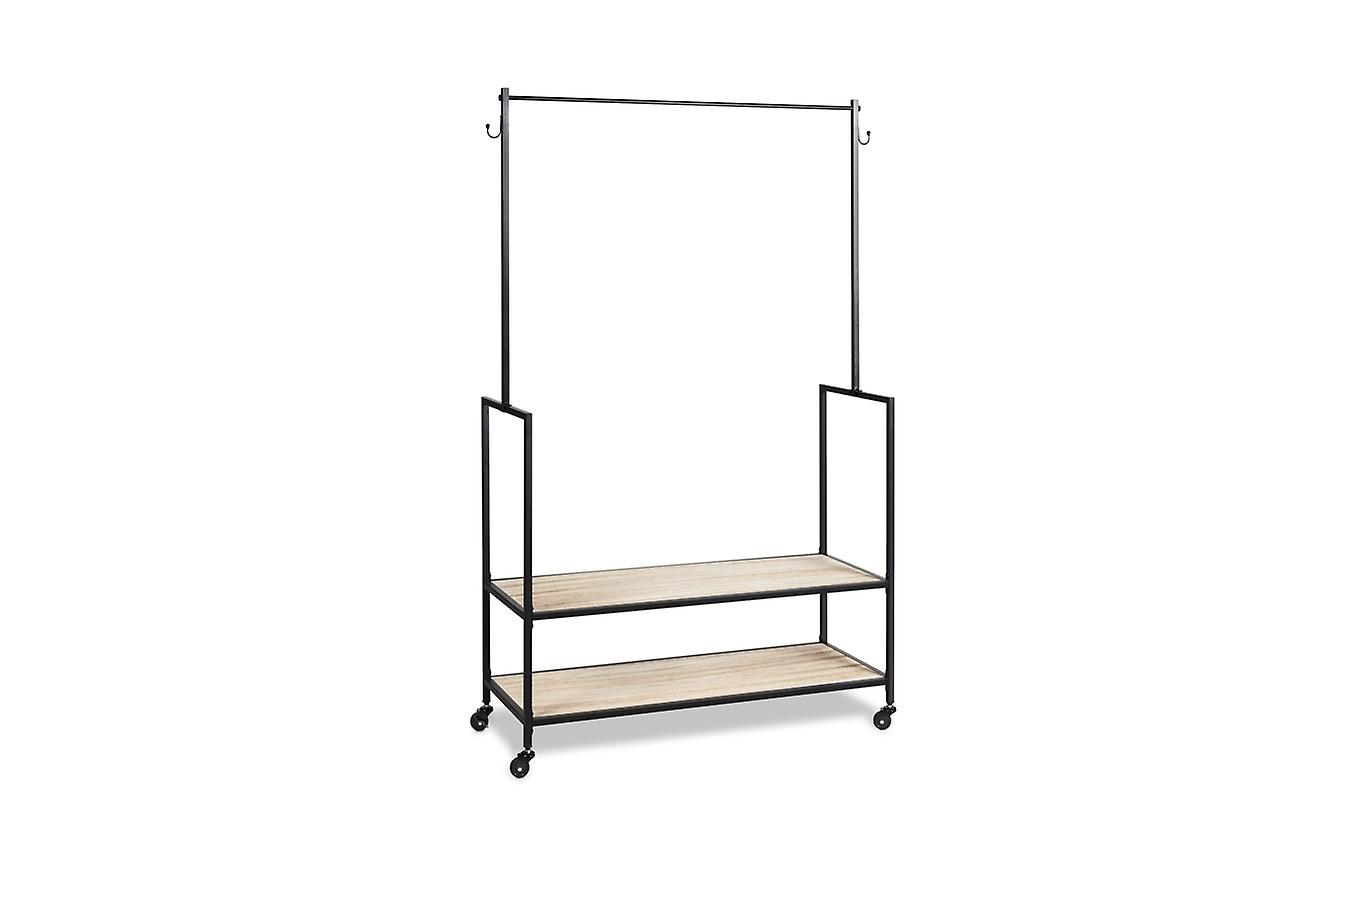 LIFA LIVING clothes rack on rolls, clothes rack wood and metal black, 2 shelves, shoe rack, wardrobe stand with parking brake for bedroom, 1.75 m